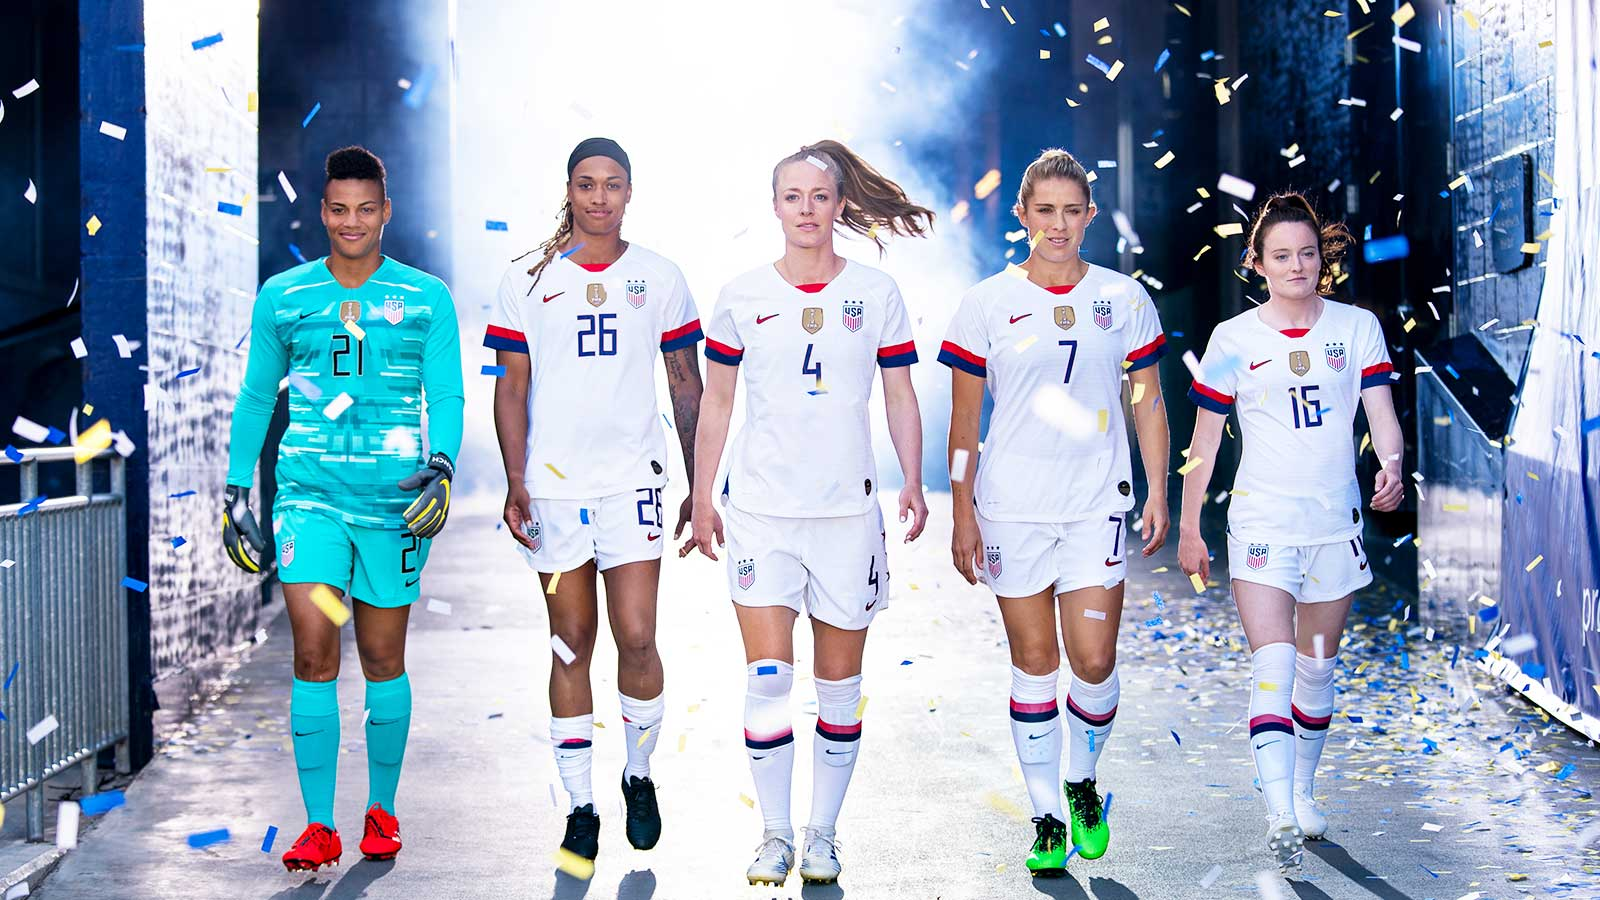 FIFA Women's World Cup USA team walking into a stadium with confetti falling through the air.